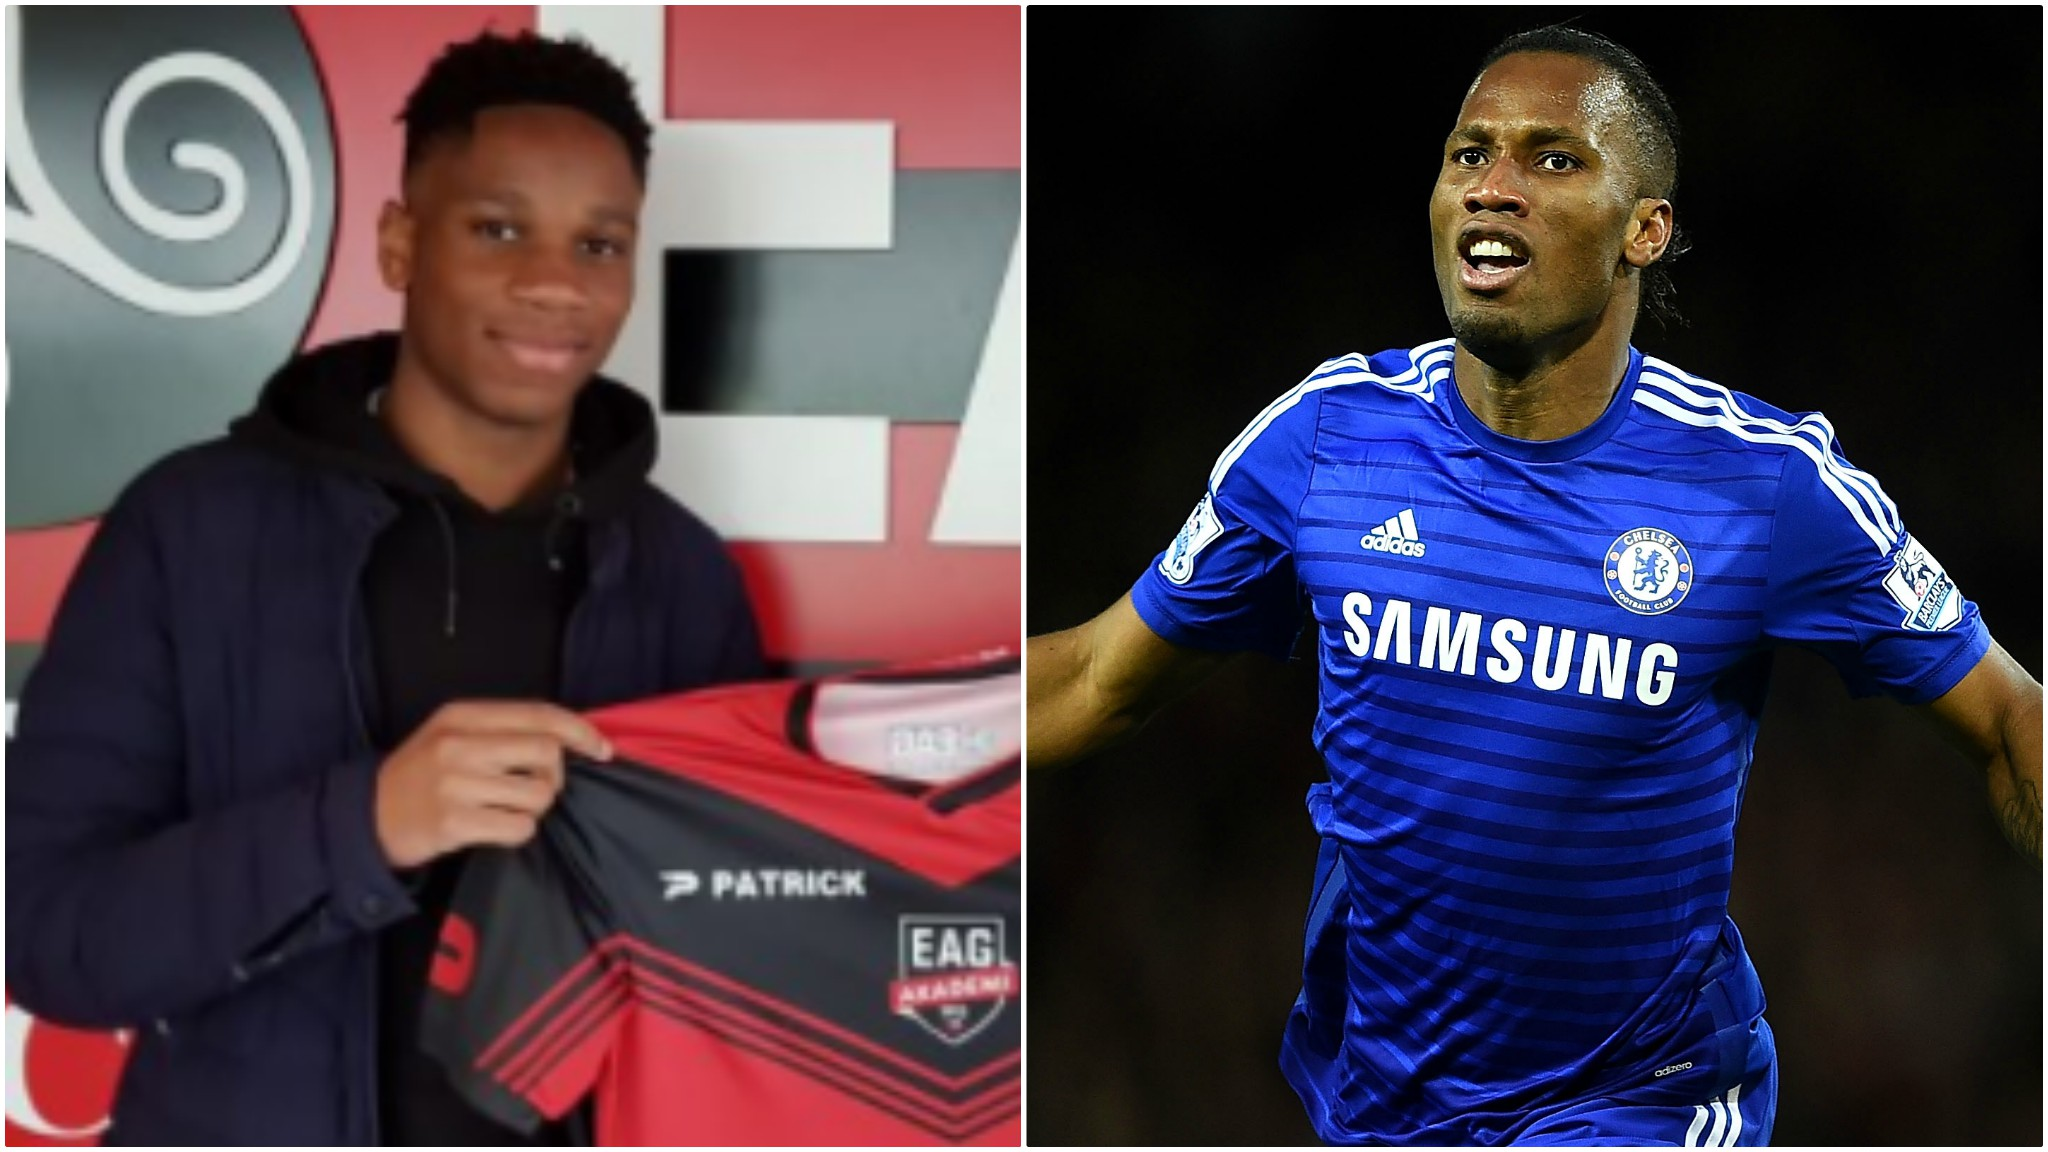 Didier Drogba's 17-year-old son Isaac joins French Ligue 1 side Guingamp